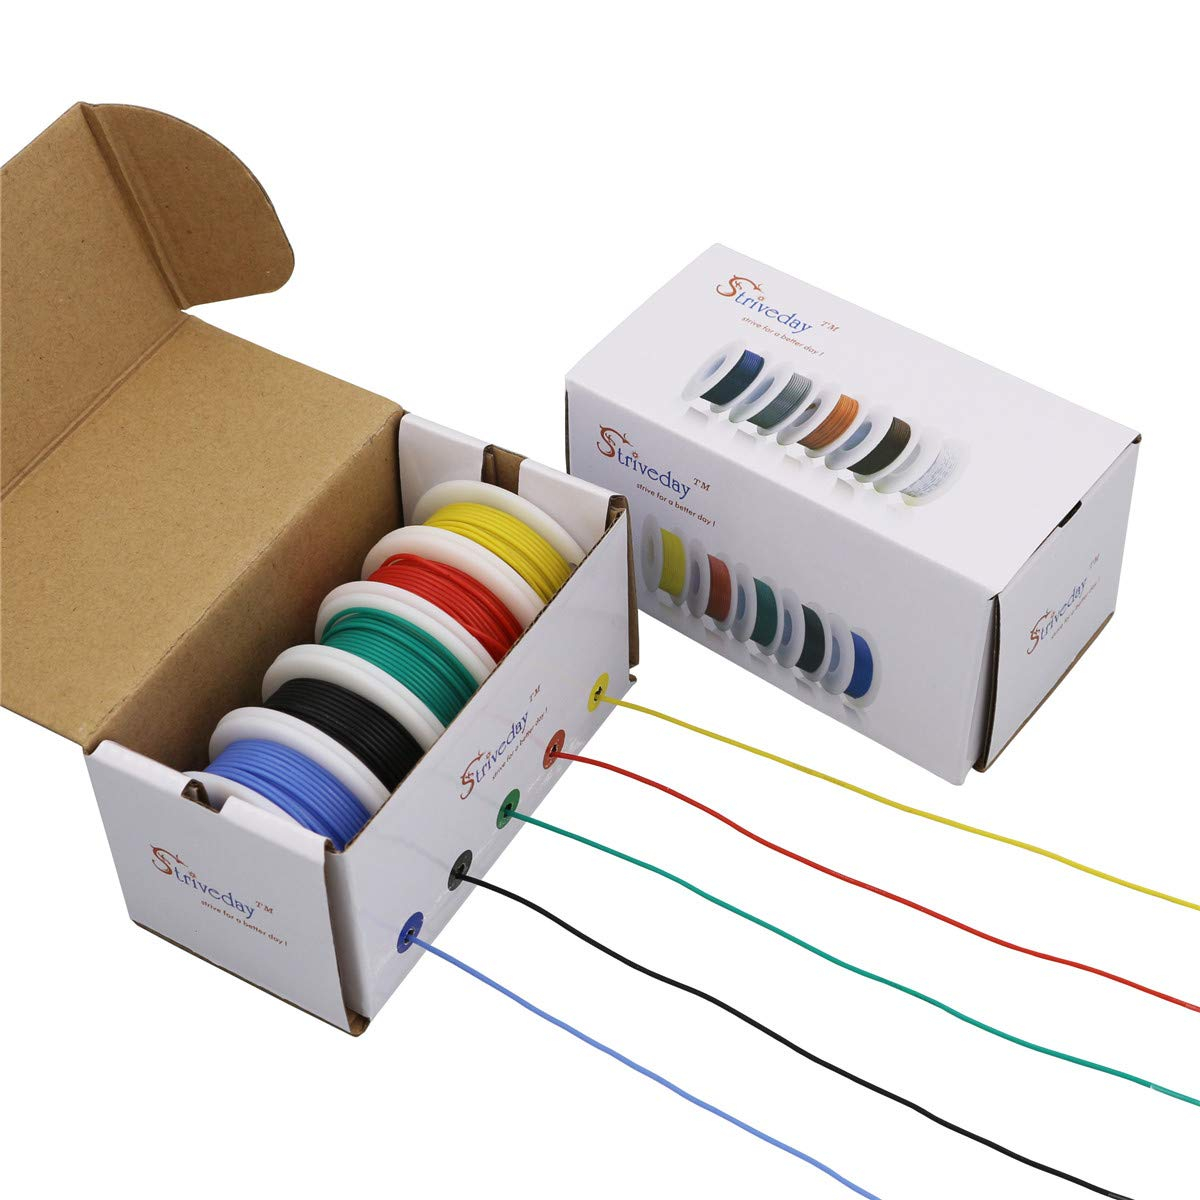 Striveday/™ 30 AWG Flexible Silicone Wire Electric wire 30 gauge Coper Hook Up Wire 300V Cables electronic stranded wire cable electrics DIY BOX-1